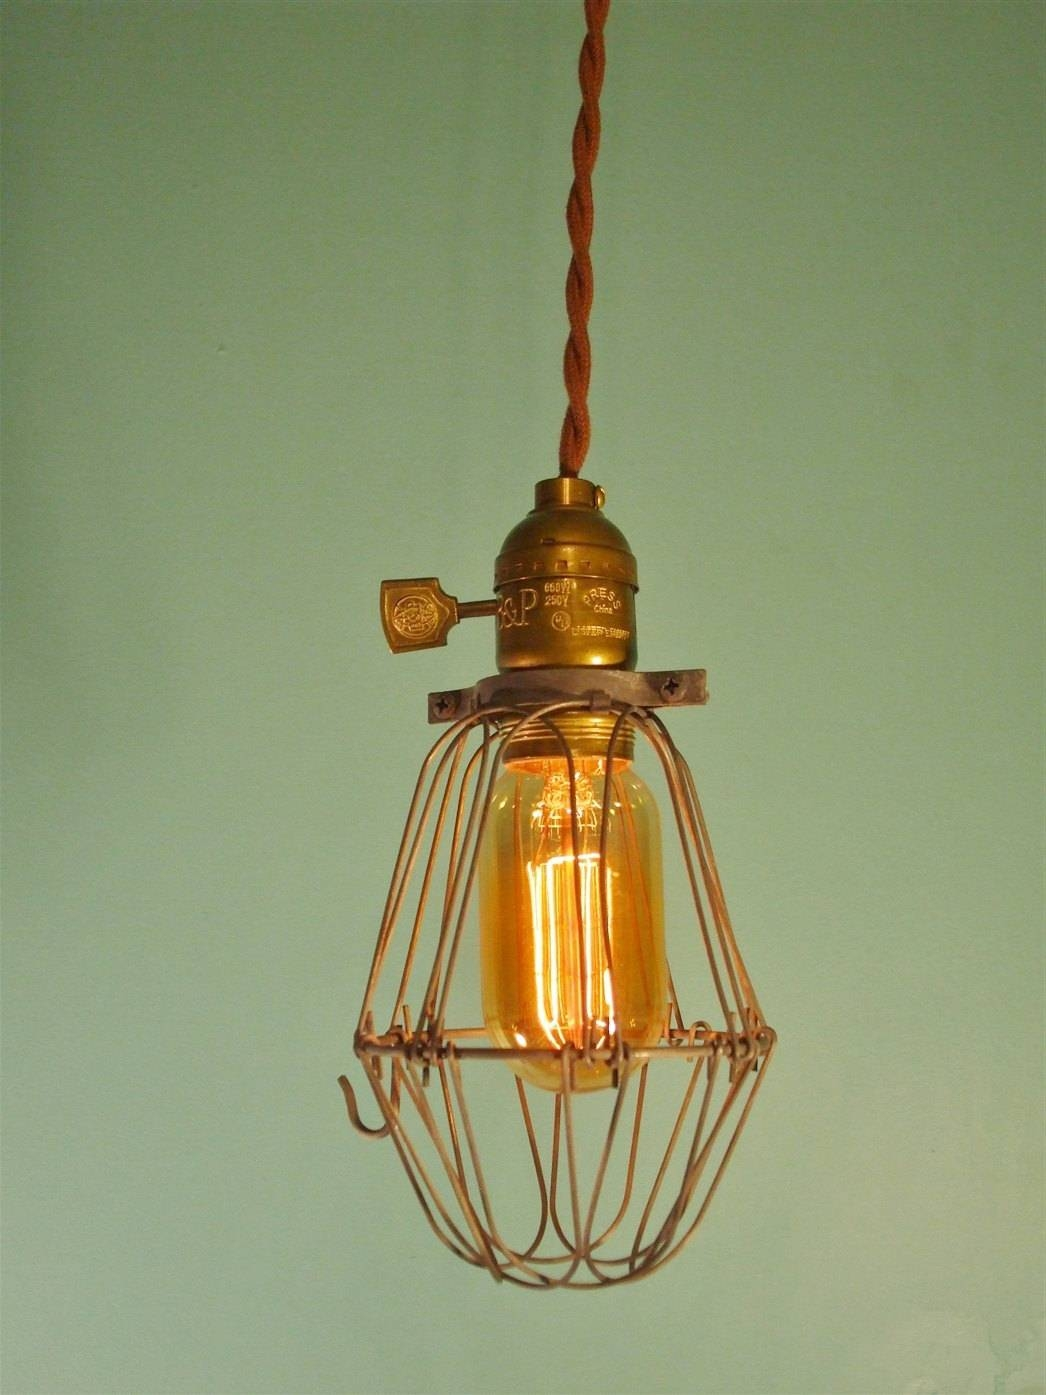 Vintage Industrial Cage Light Pendant Lamp Pendant Light regarding Bare Bulb Pendant Lights Fixtures (Image 14 of 15)